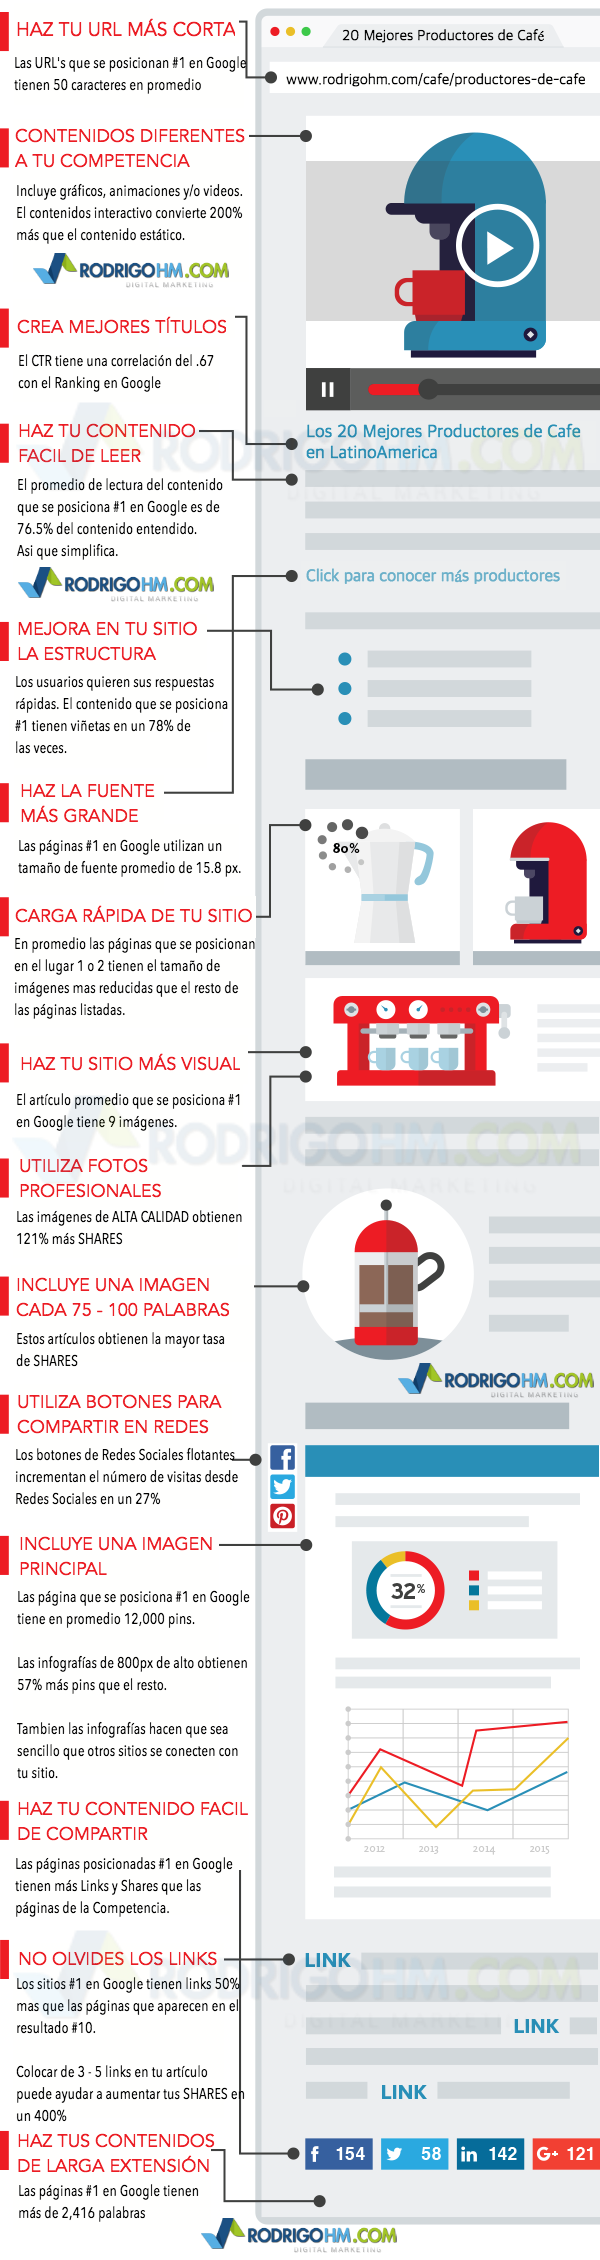 MaRKETING DE Contenido Competencia